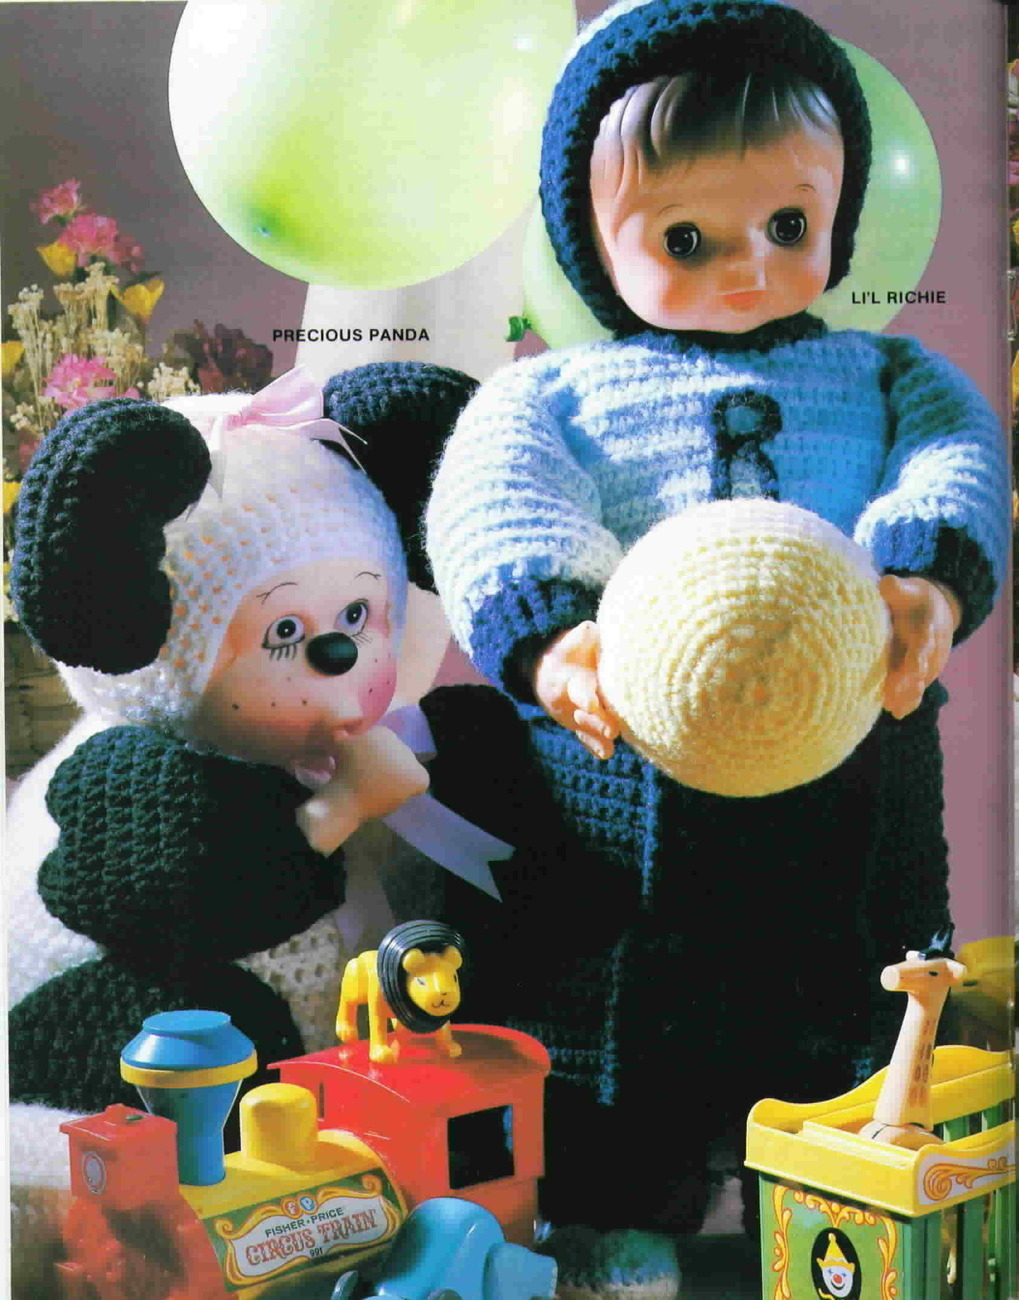 Desirable Dolls A Charming Crochet Collection from Leisure Time Publishing